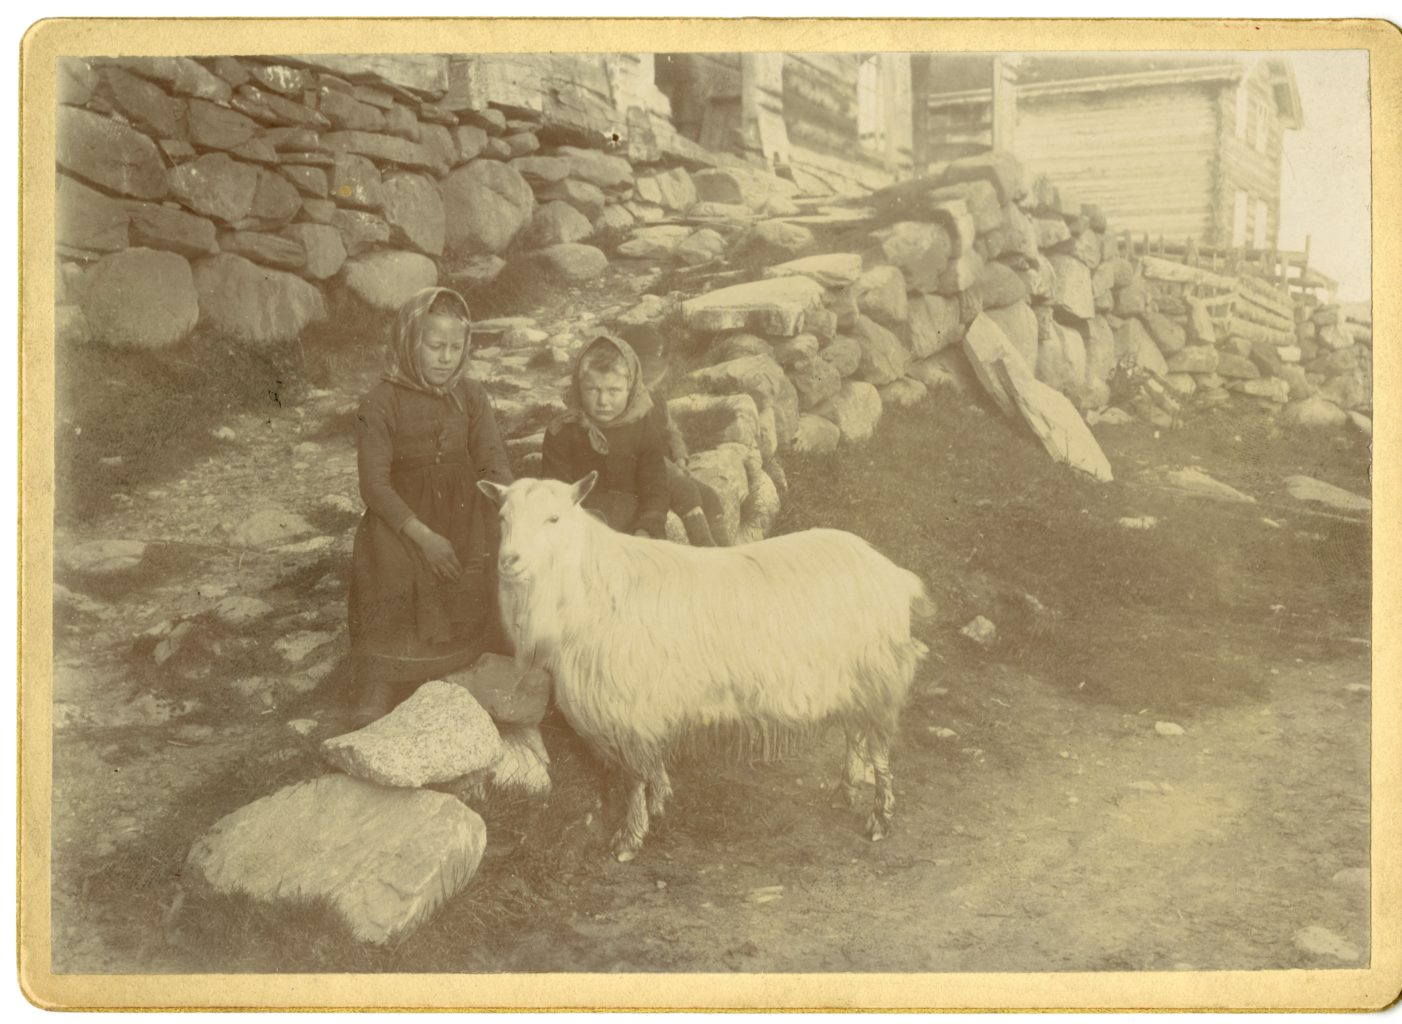 Two young girls sit on rock wall with goat, Midtgarden.